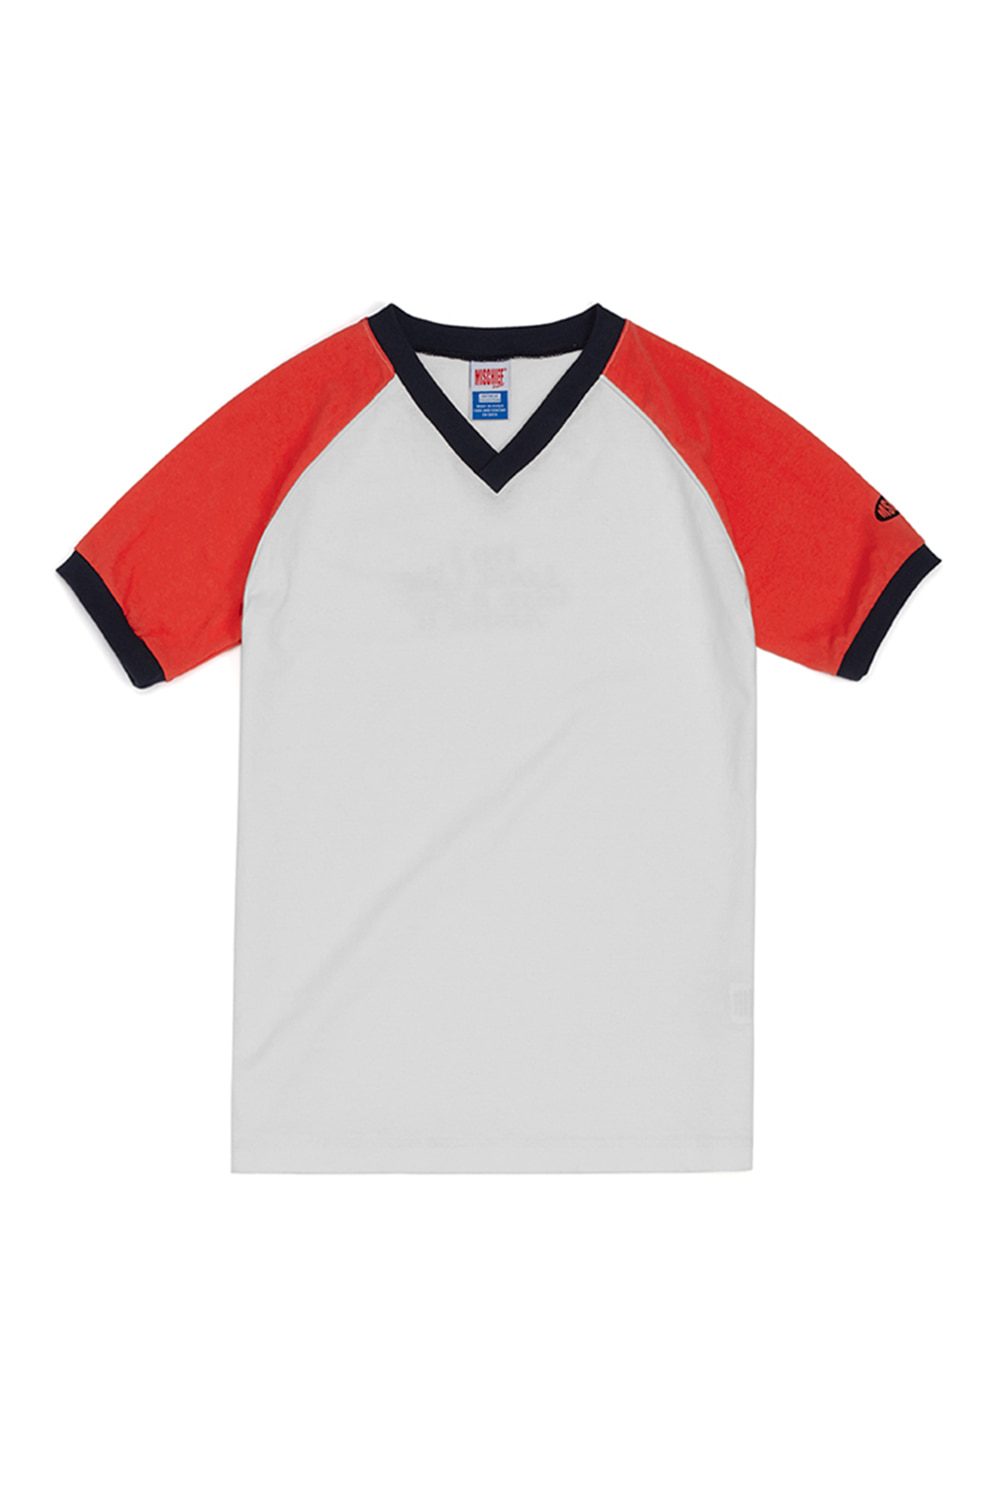 MSCHF_RAGLAN RINGER_blue/red